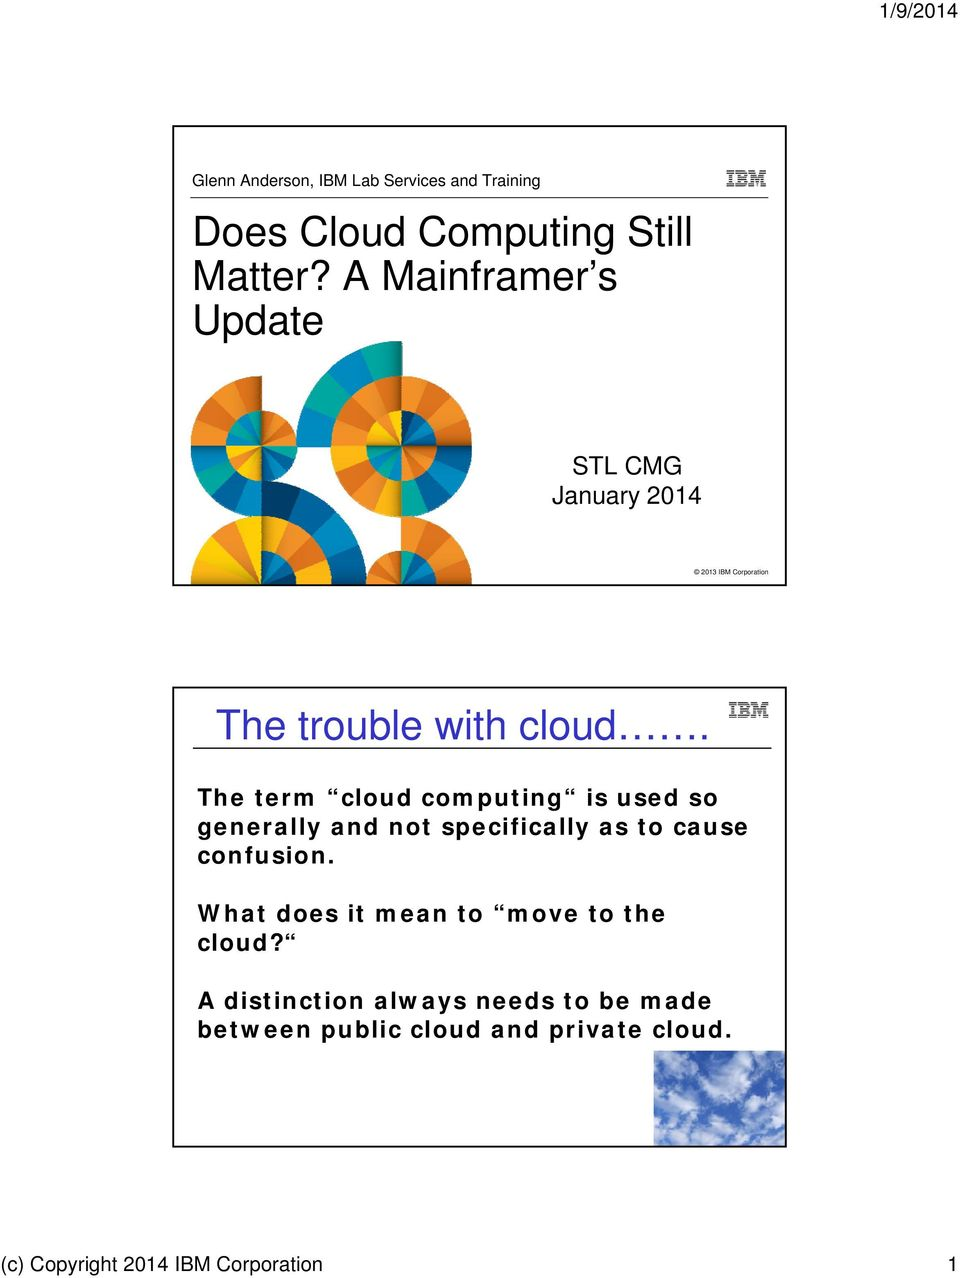 The term cloud computing is used so generally and not specifically as to cause confusion.